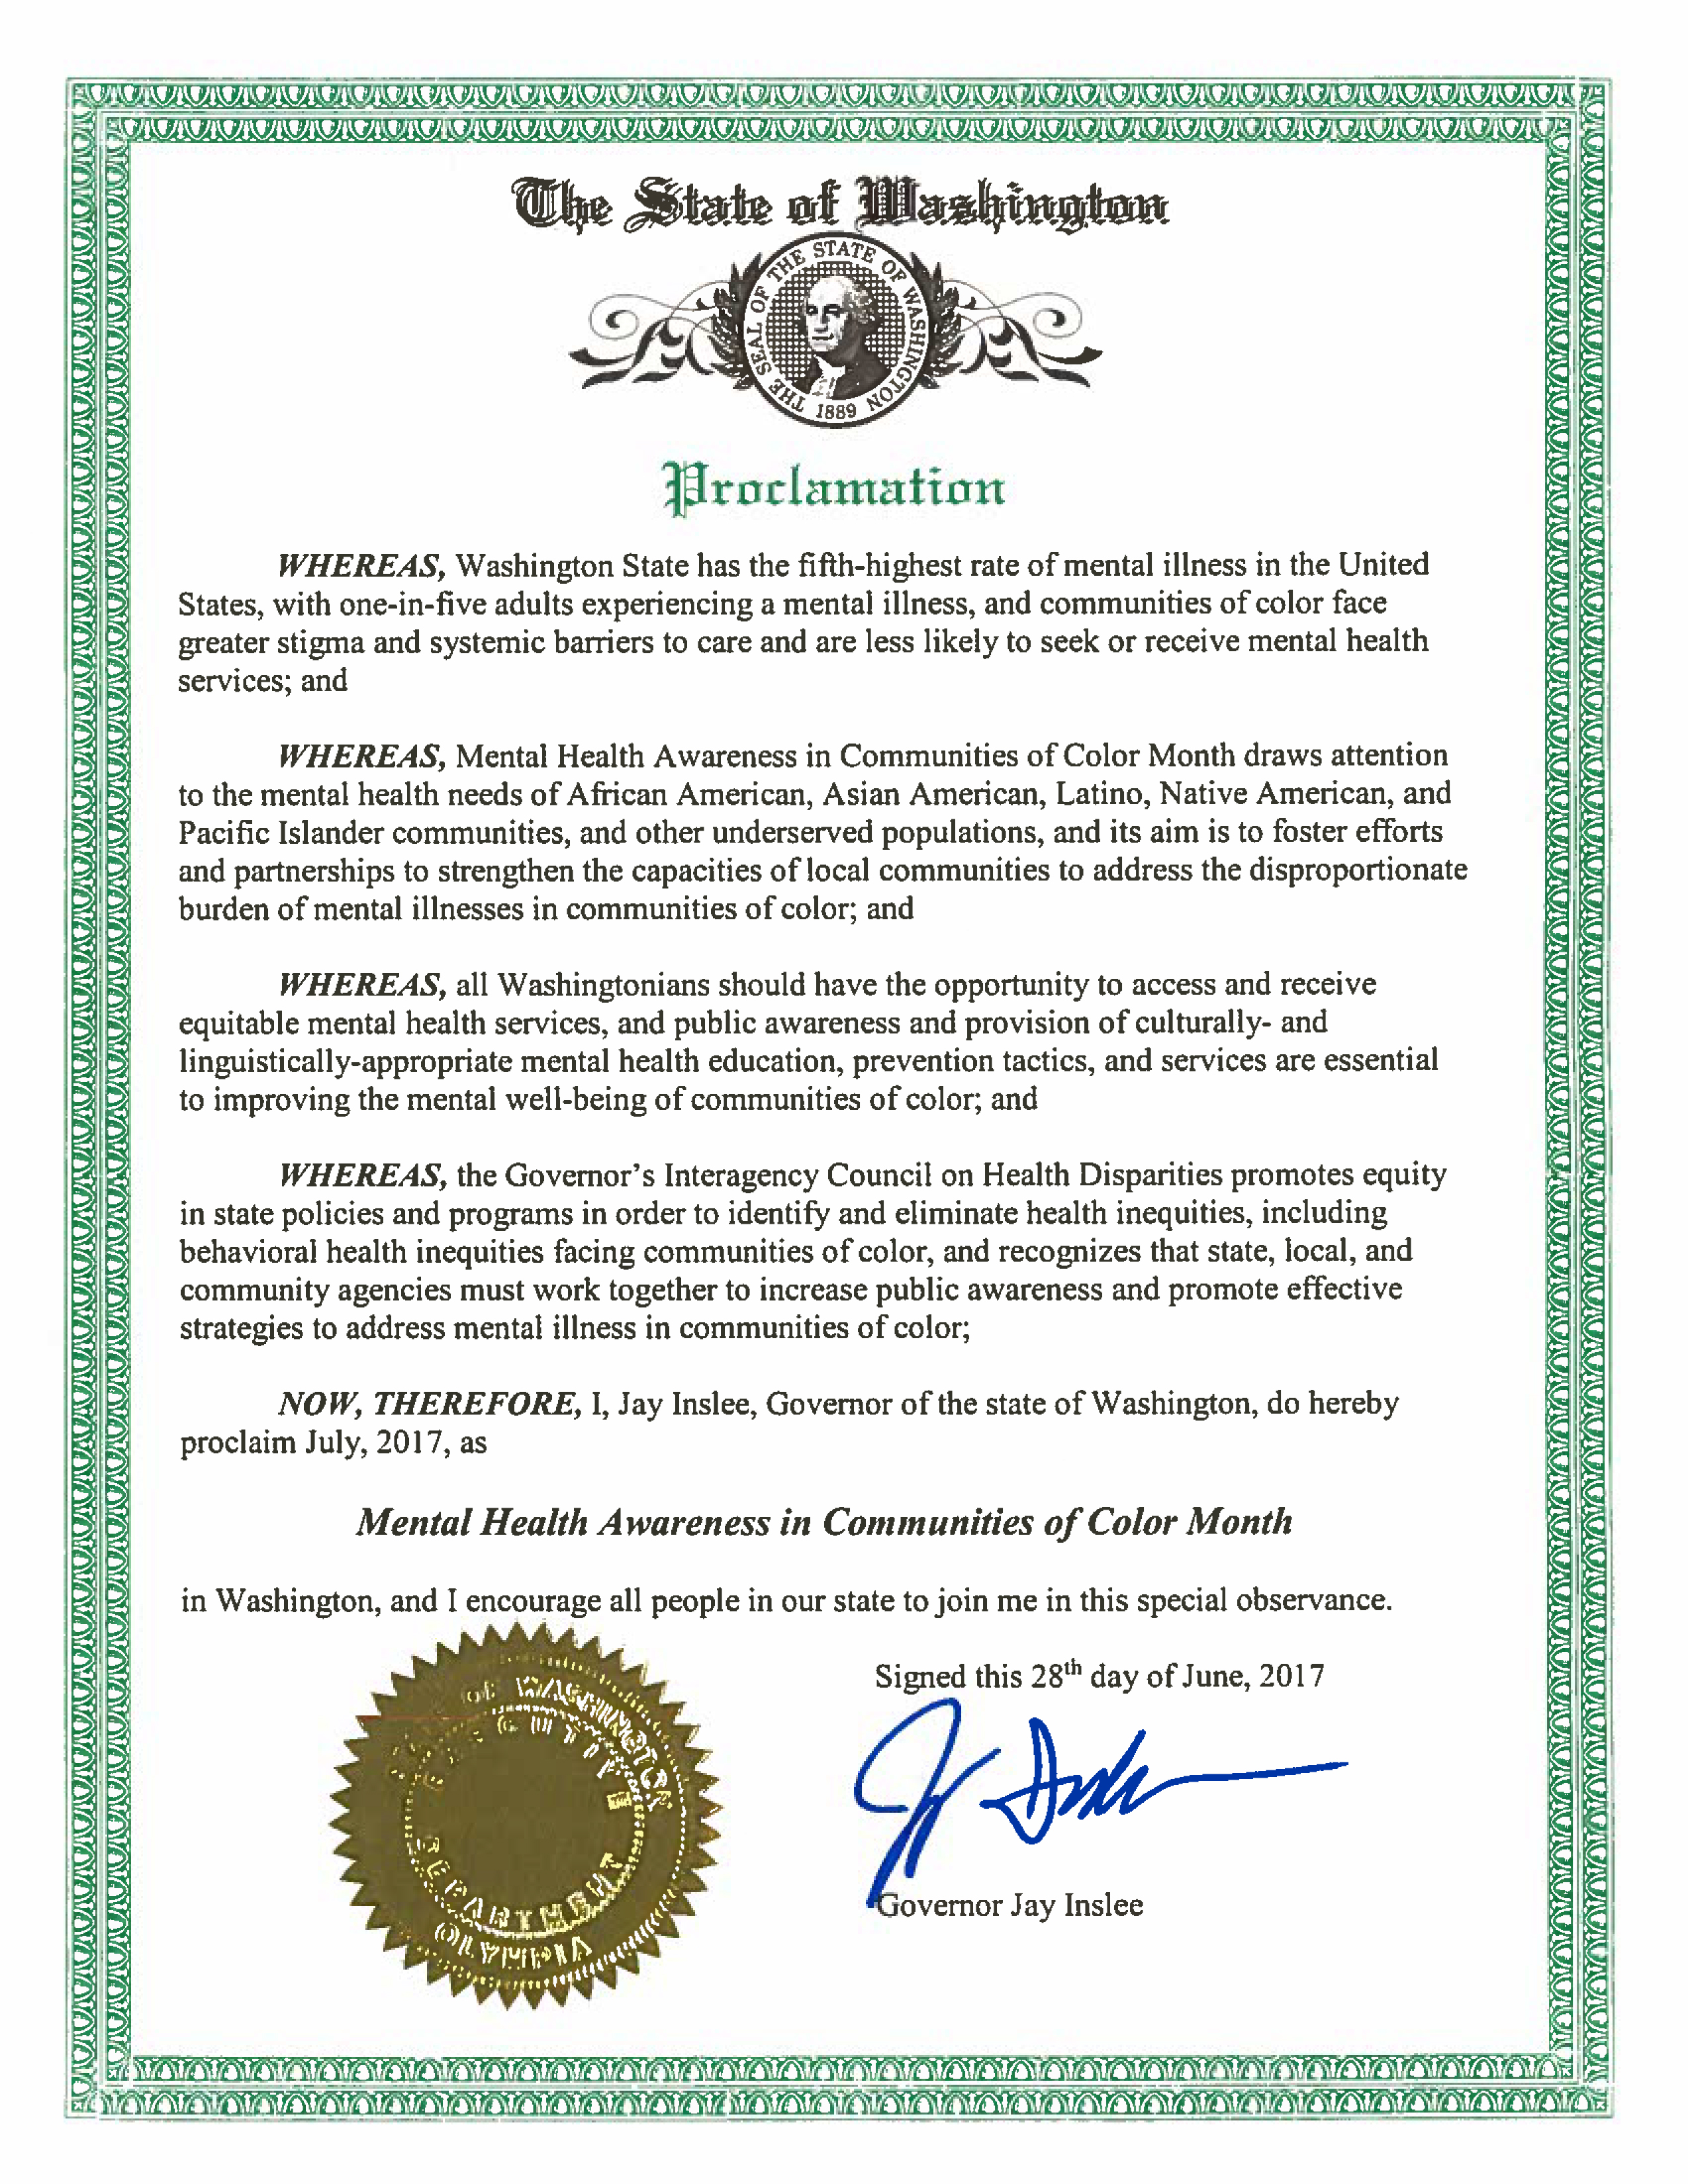 Governor Inslee has proclaimed July 2017 as Mental Health Awareness in Communities of Color Month.